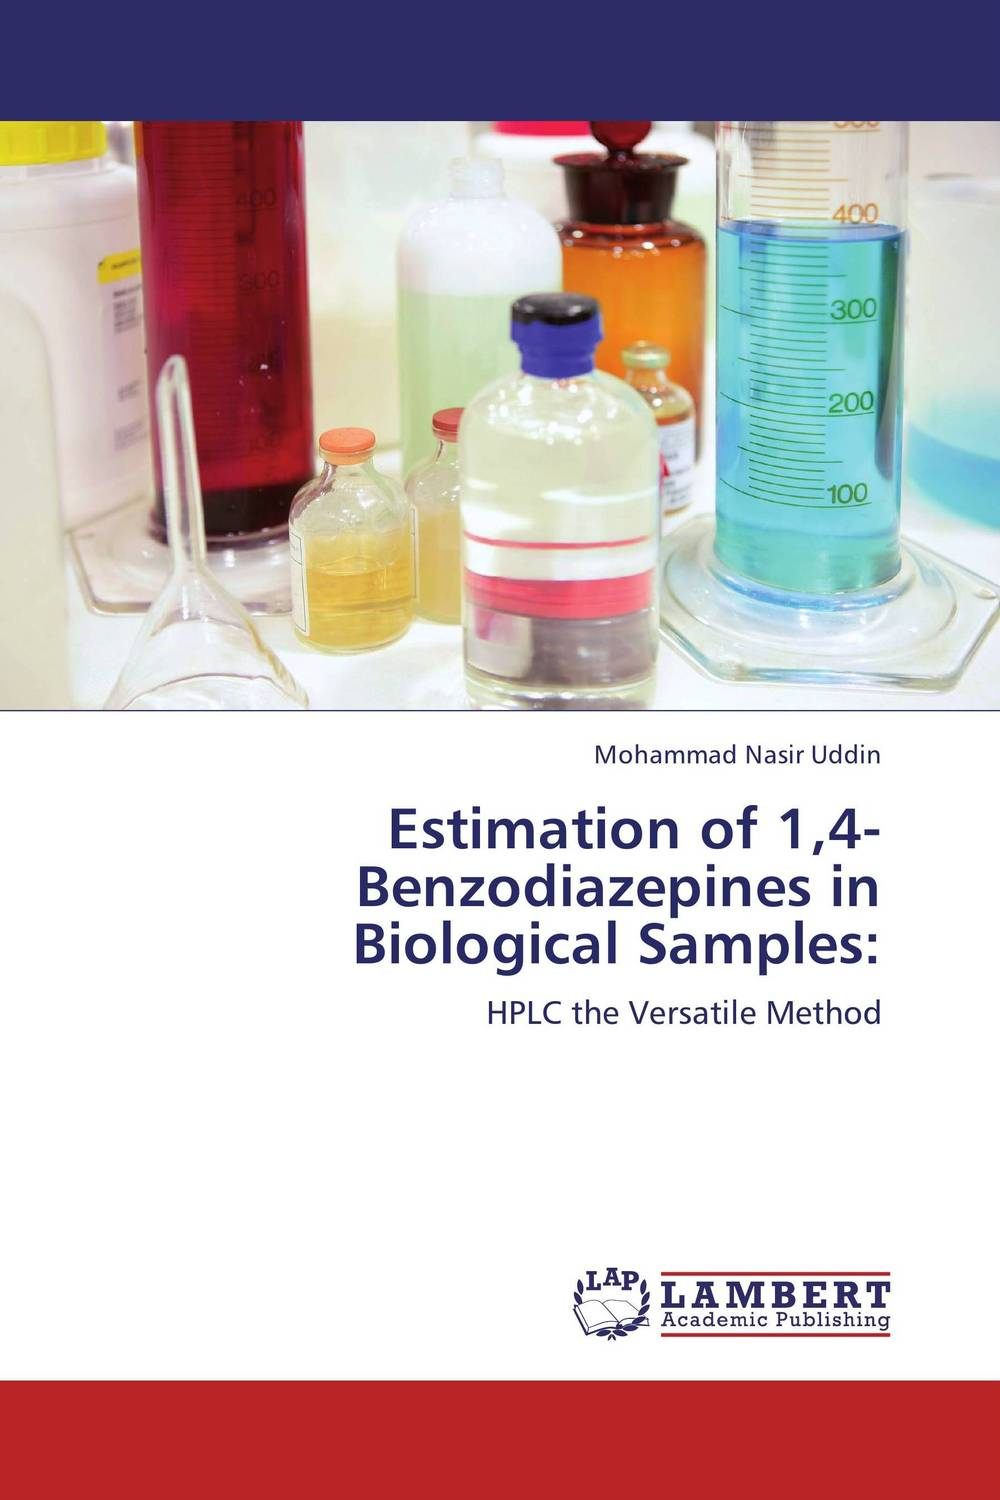 Estimation of 1,4-Benzodiazepines in Biological Samples: stefan hofmann g psychobiological approaches for anxiety disorders treatment combination strategies